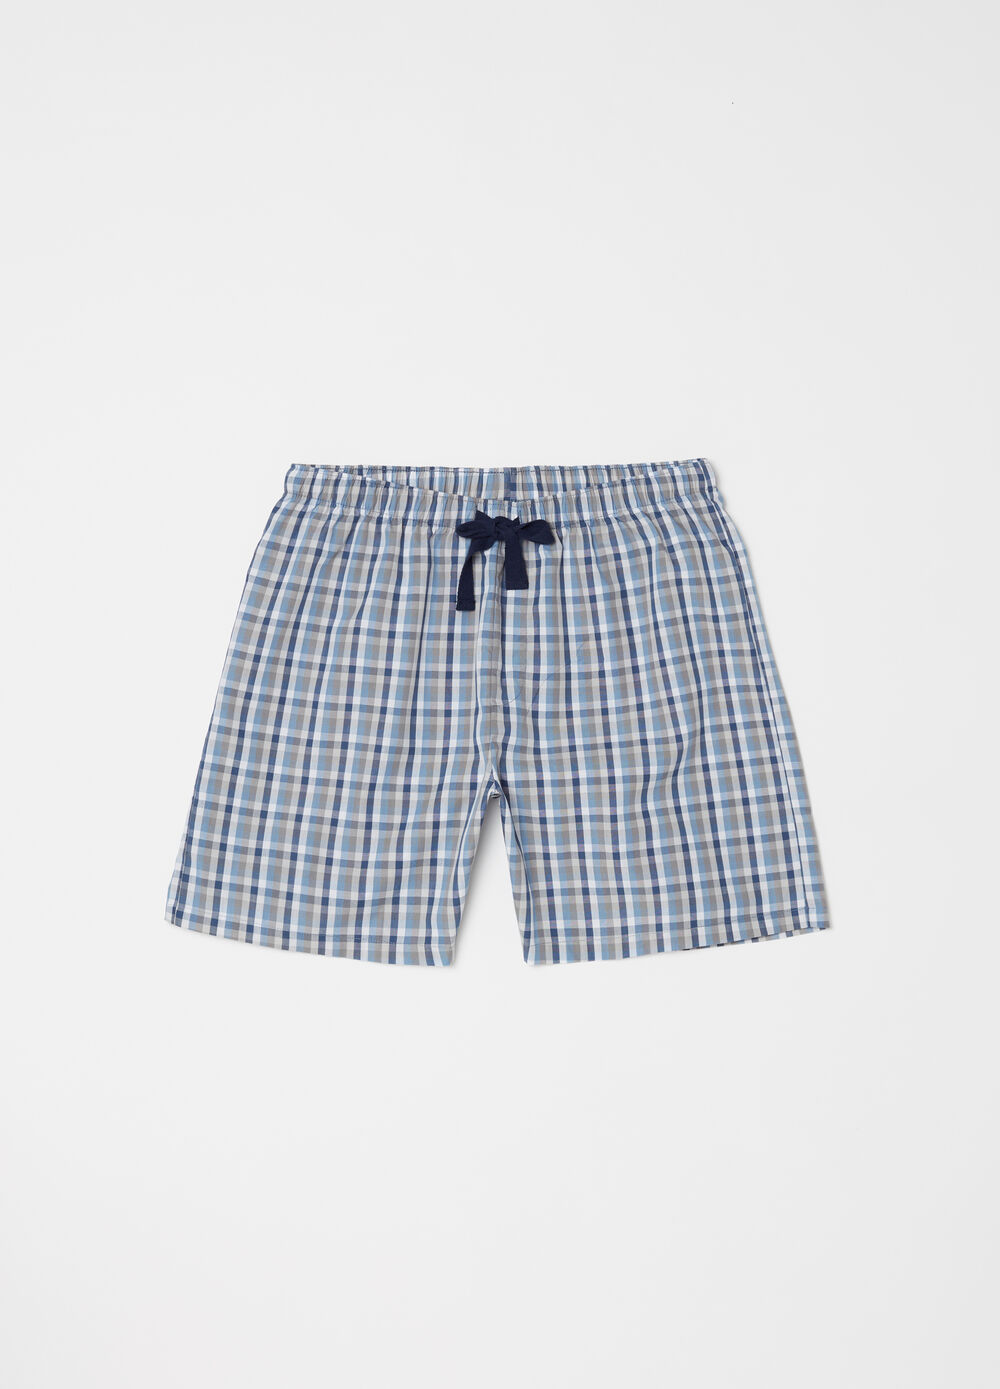 Patterned shorts with drawstring